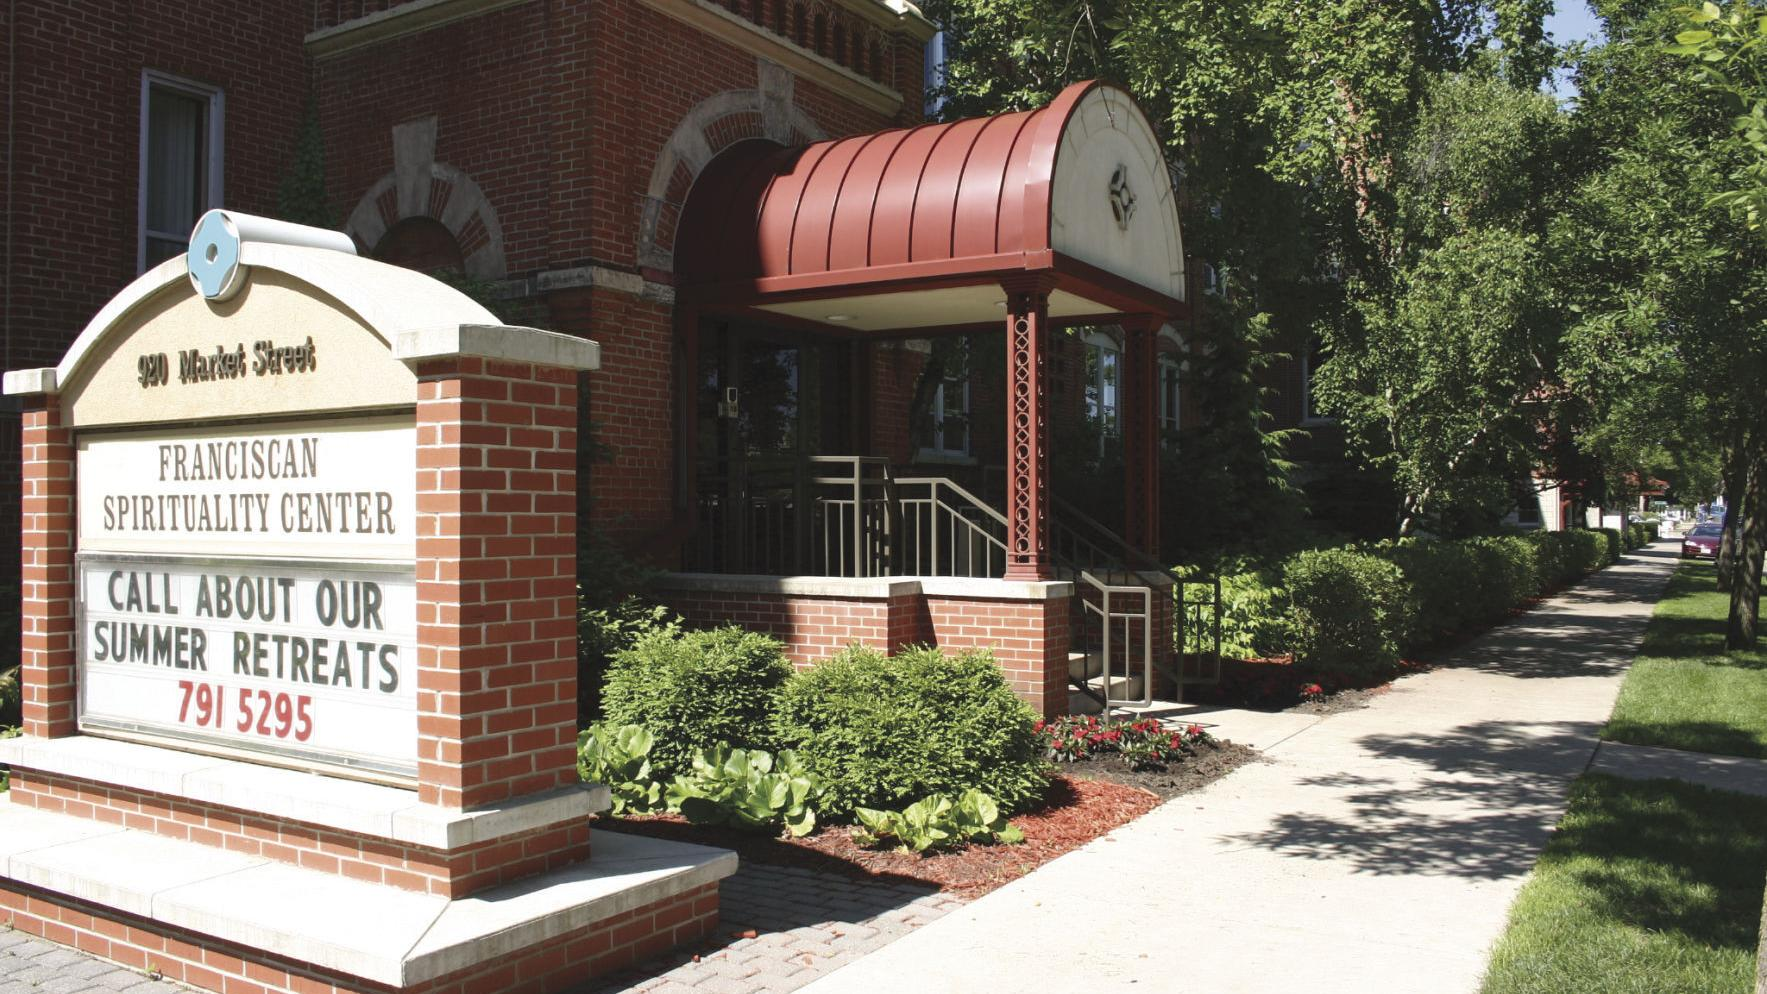 Spirituality center to offer series about lifestyle changes